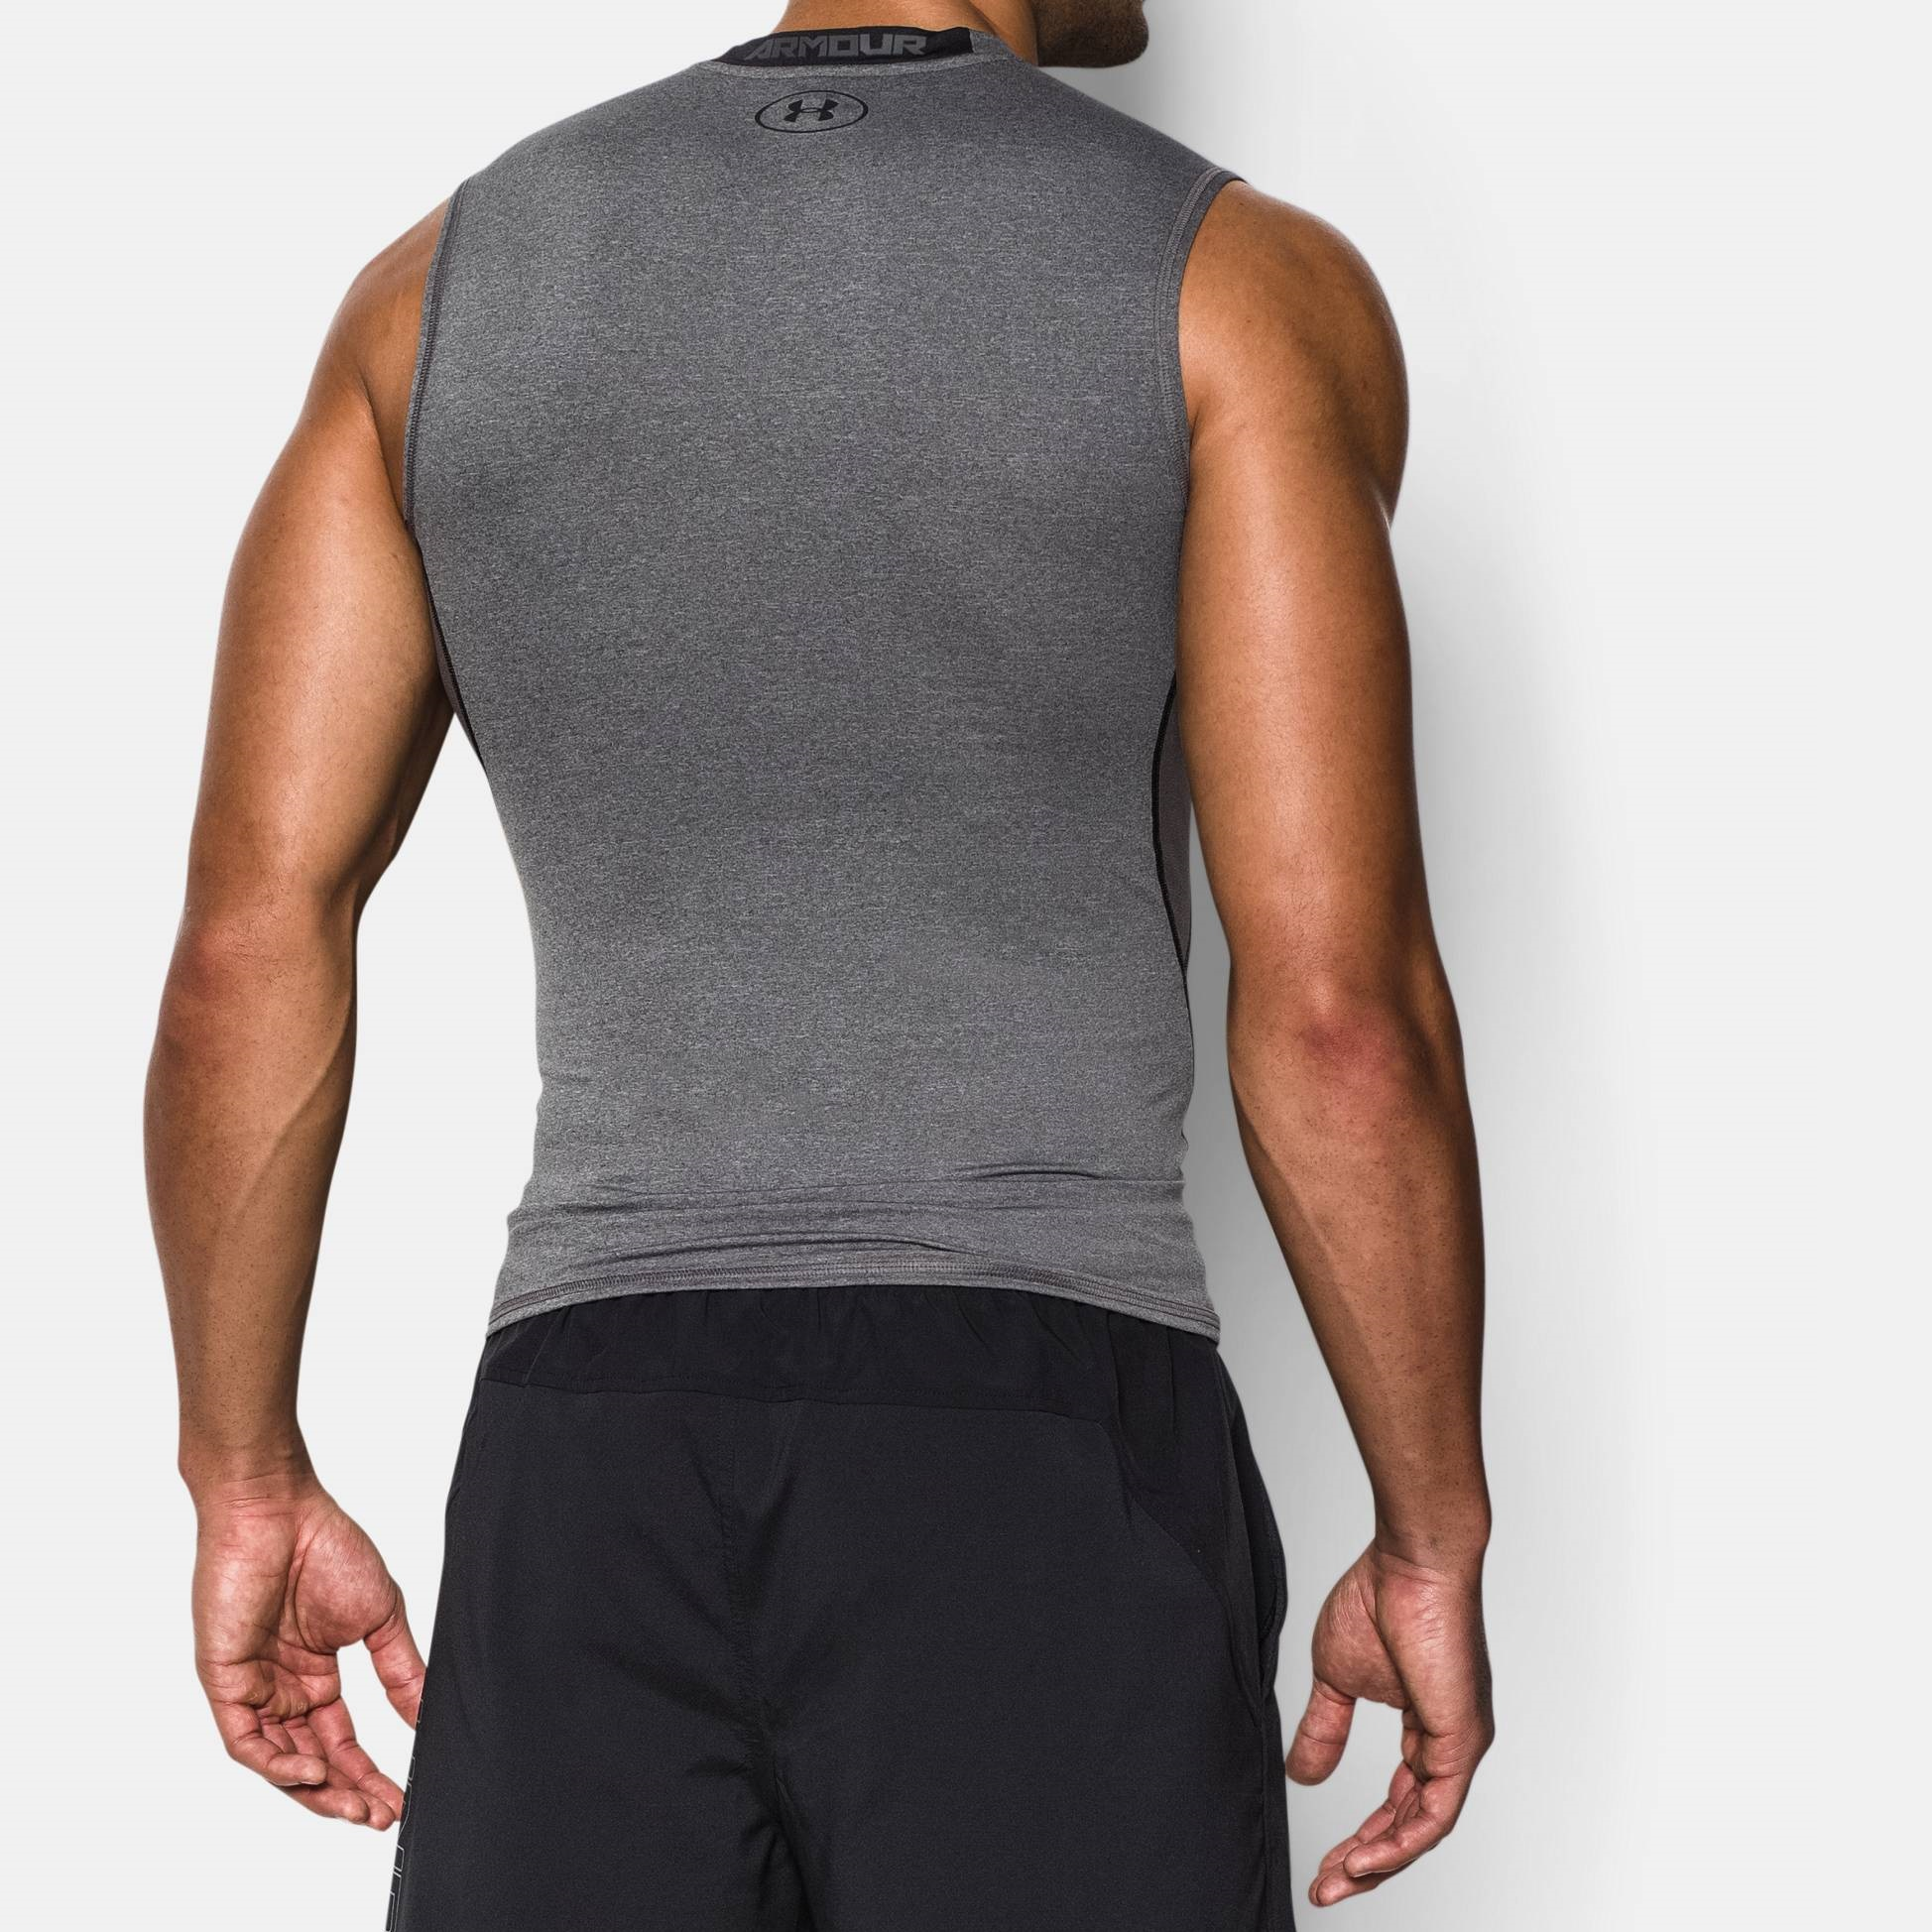 f8125e93a34324 Clothing - under armour Armour Compr. Tank Top